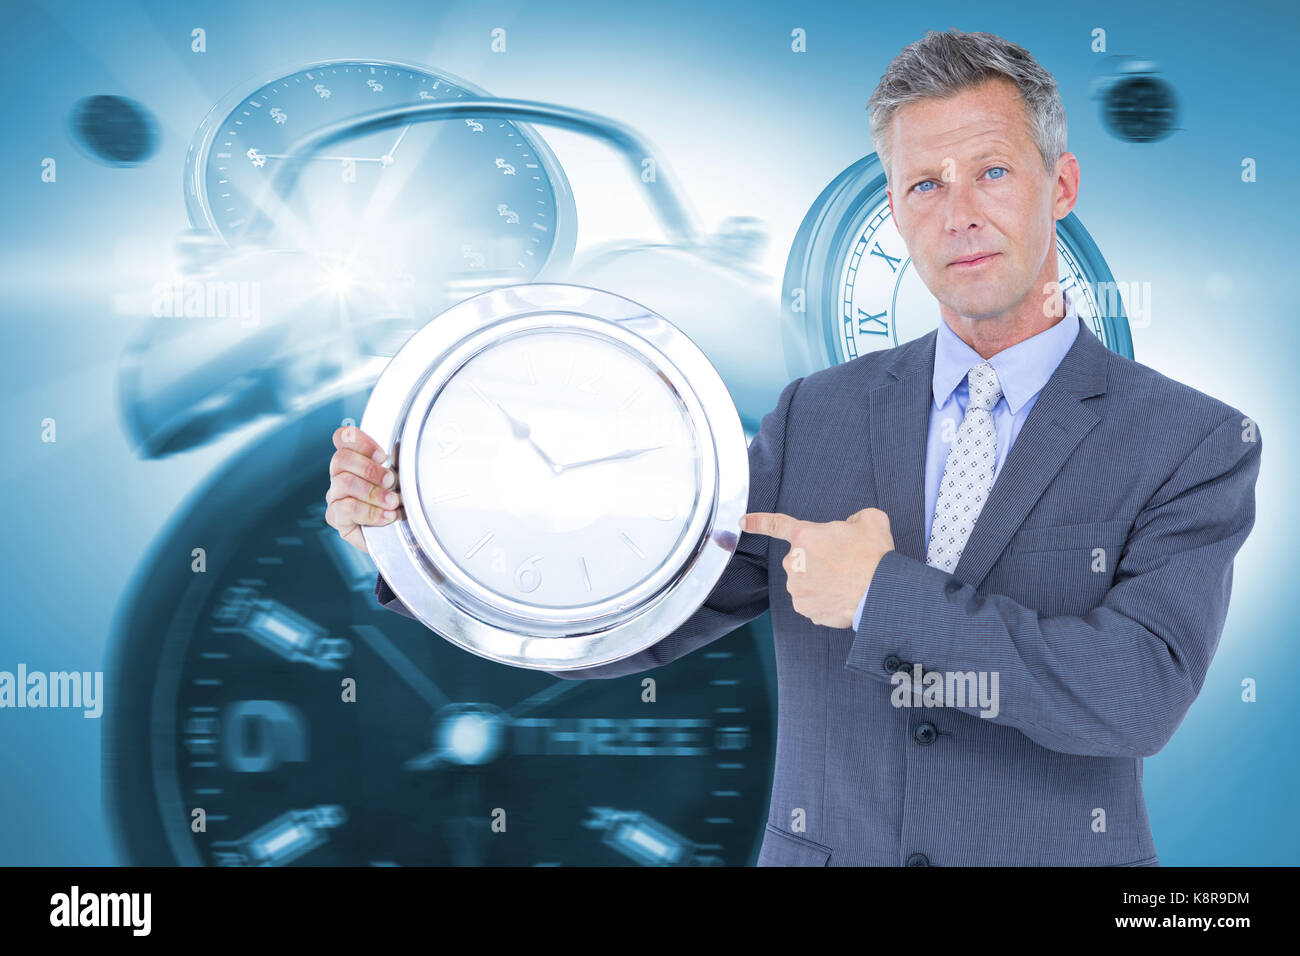 Portrait of businessman pointing at wall clock against graphic image of alarm and wall clocks - Stock Image